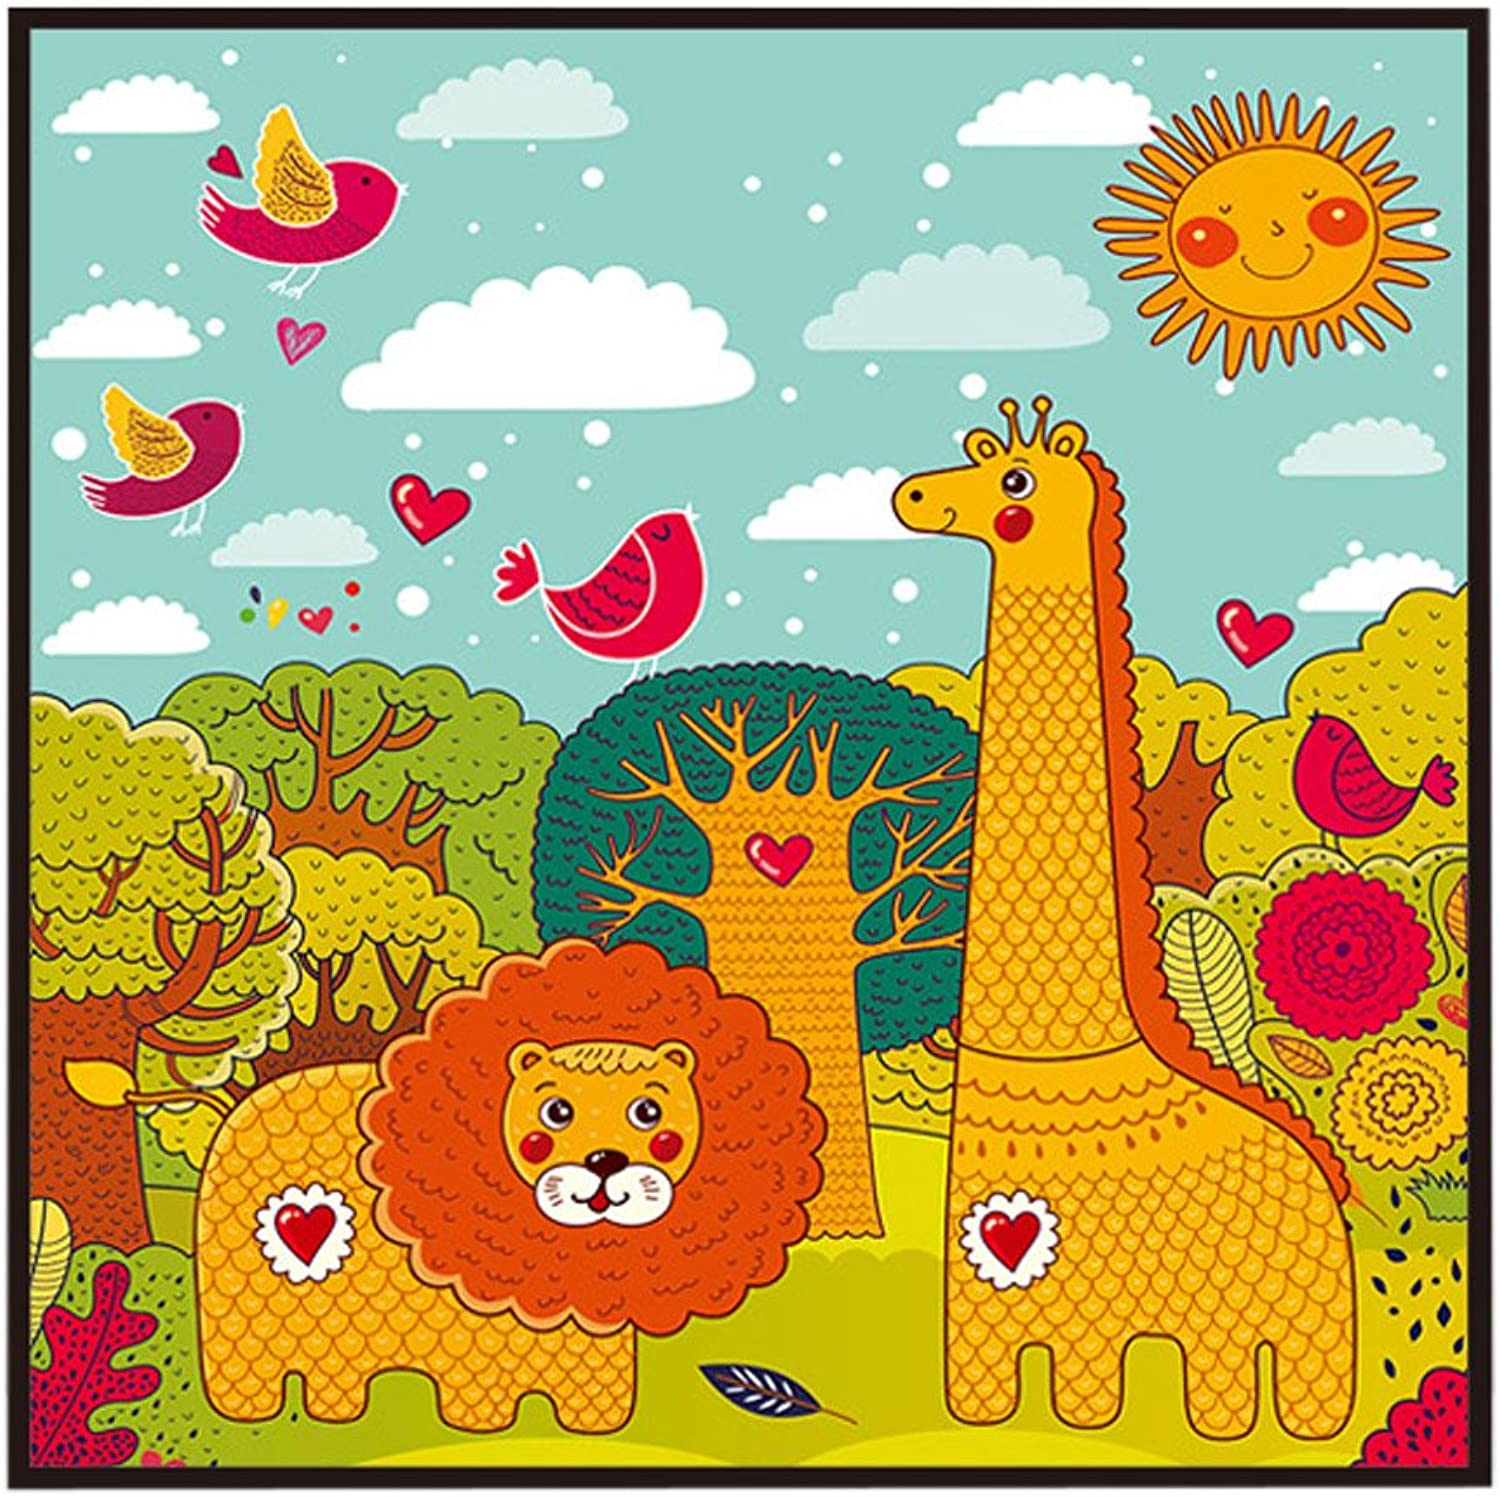 [Zoo] Decorative Painting Framed Painting Wall Decor Kids Creative Picture